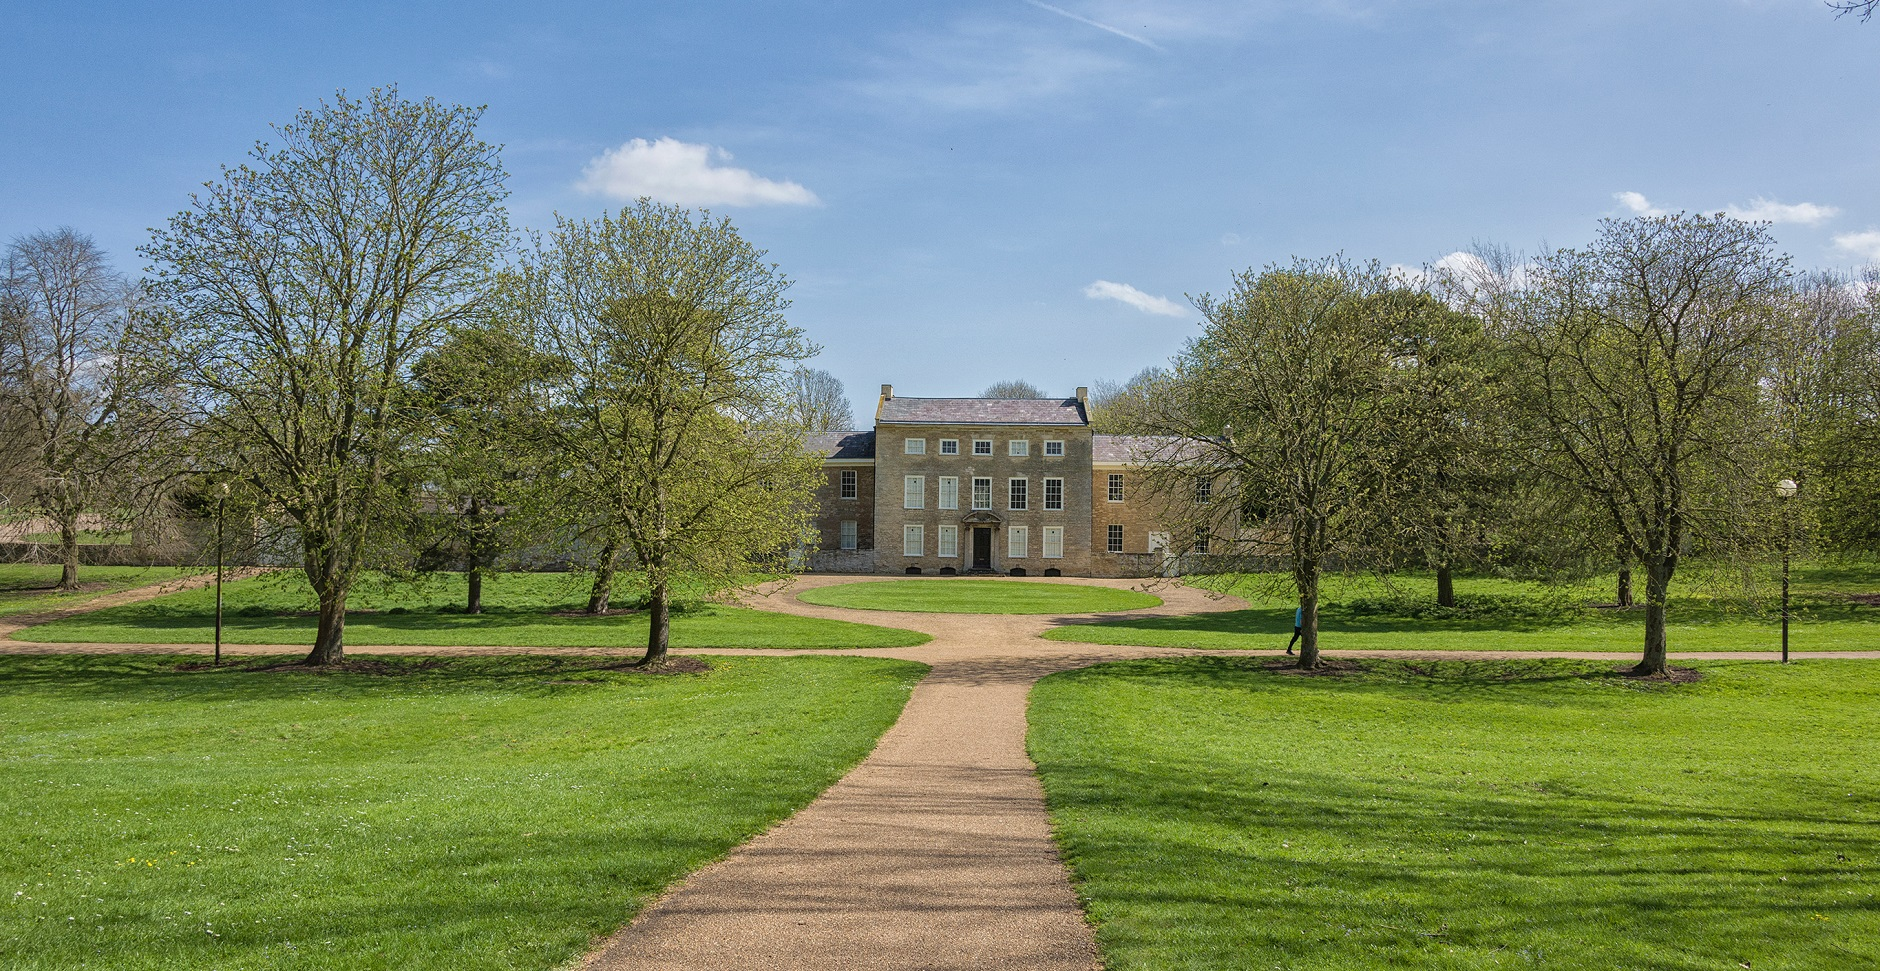 D81_2697-Manor-house-in-Manor-Park BANNER.jpg